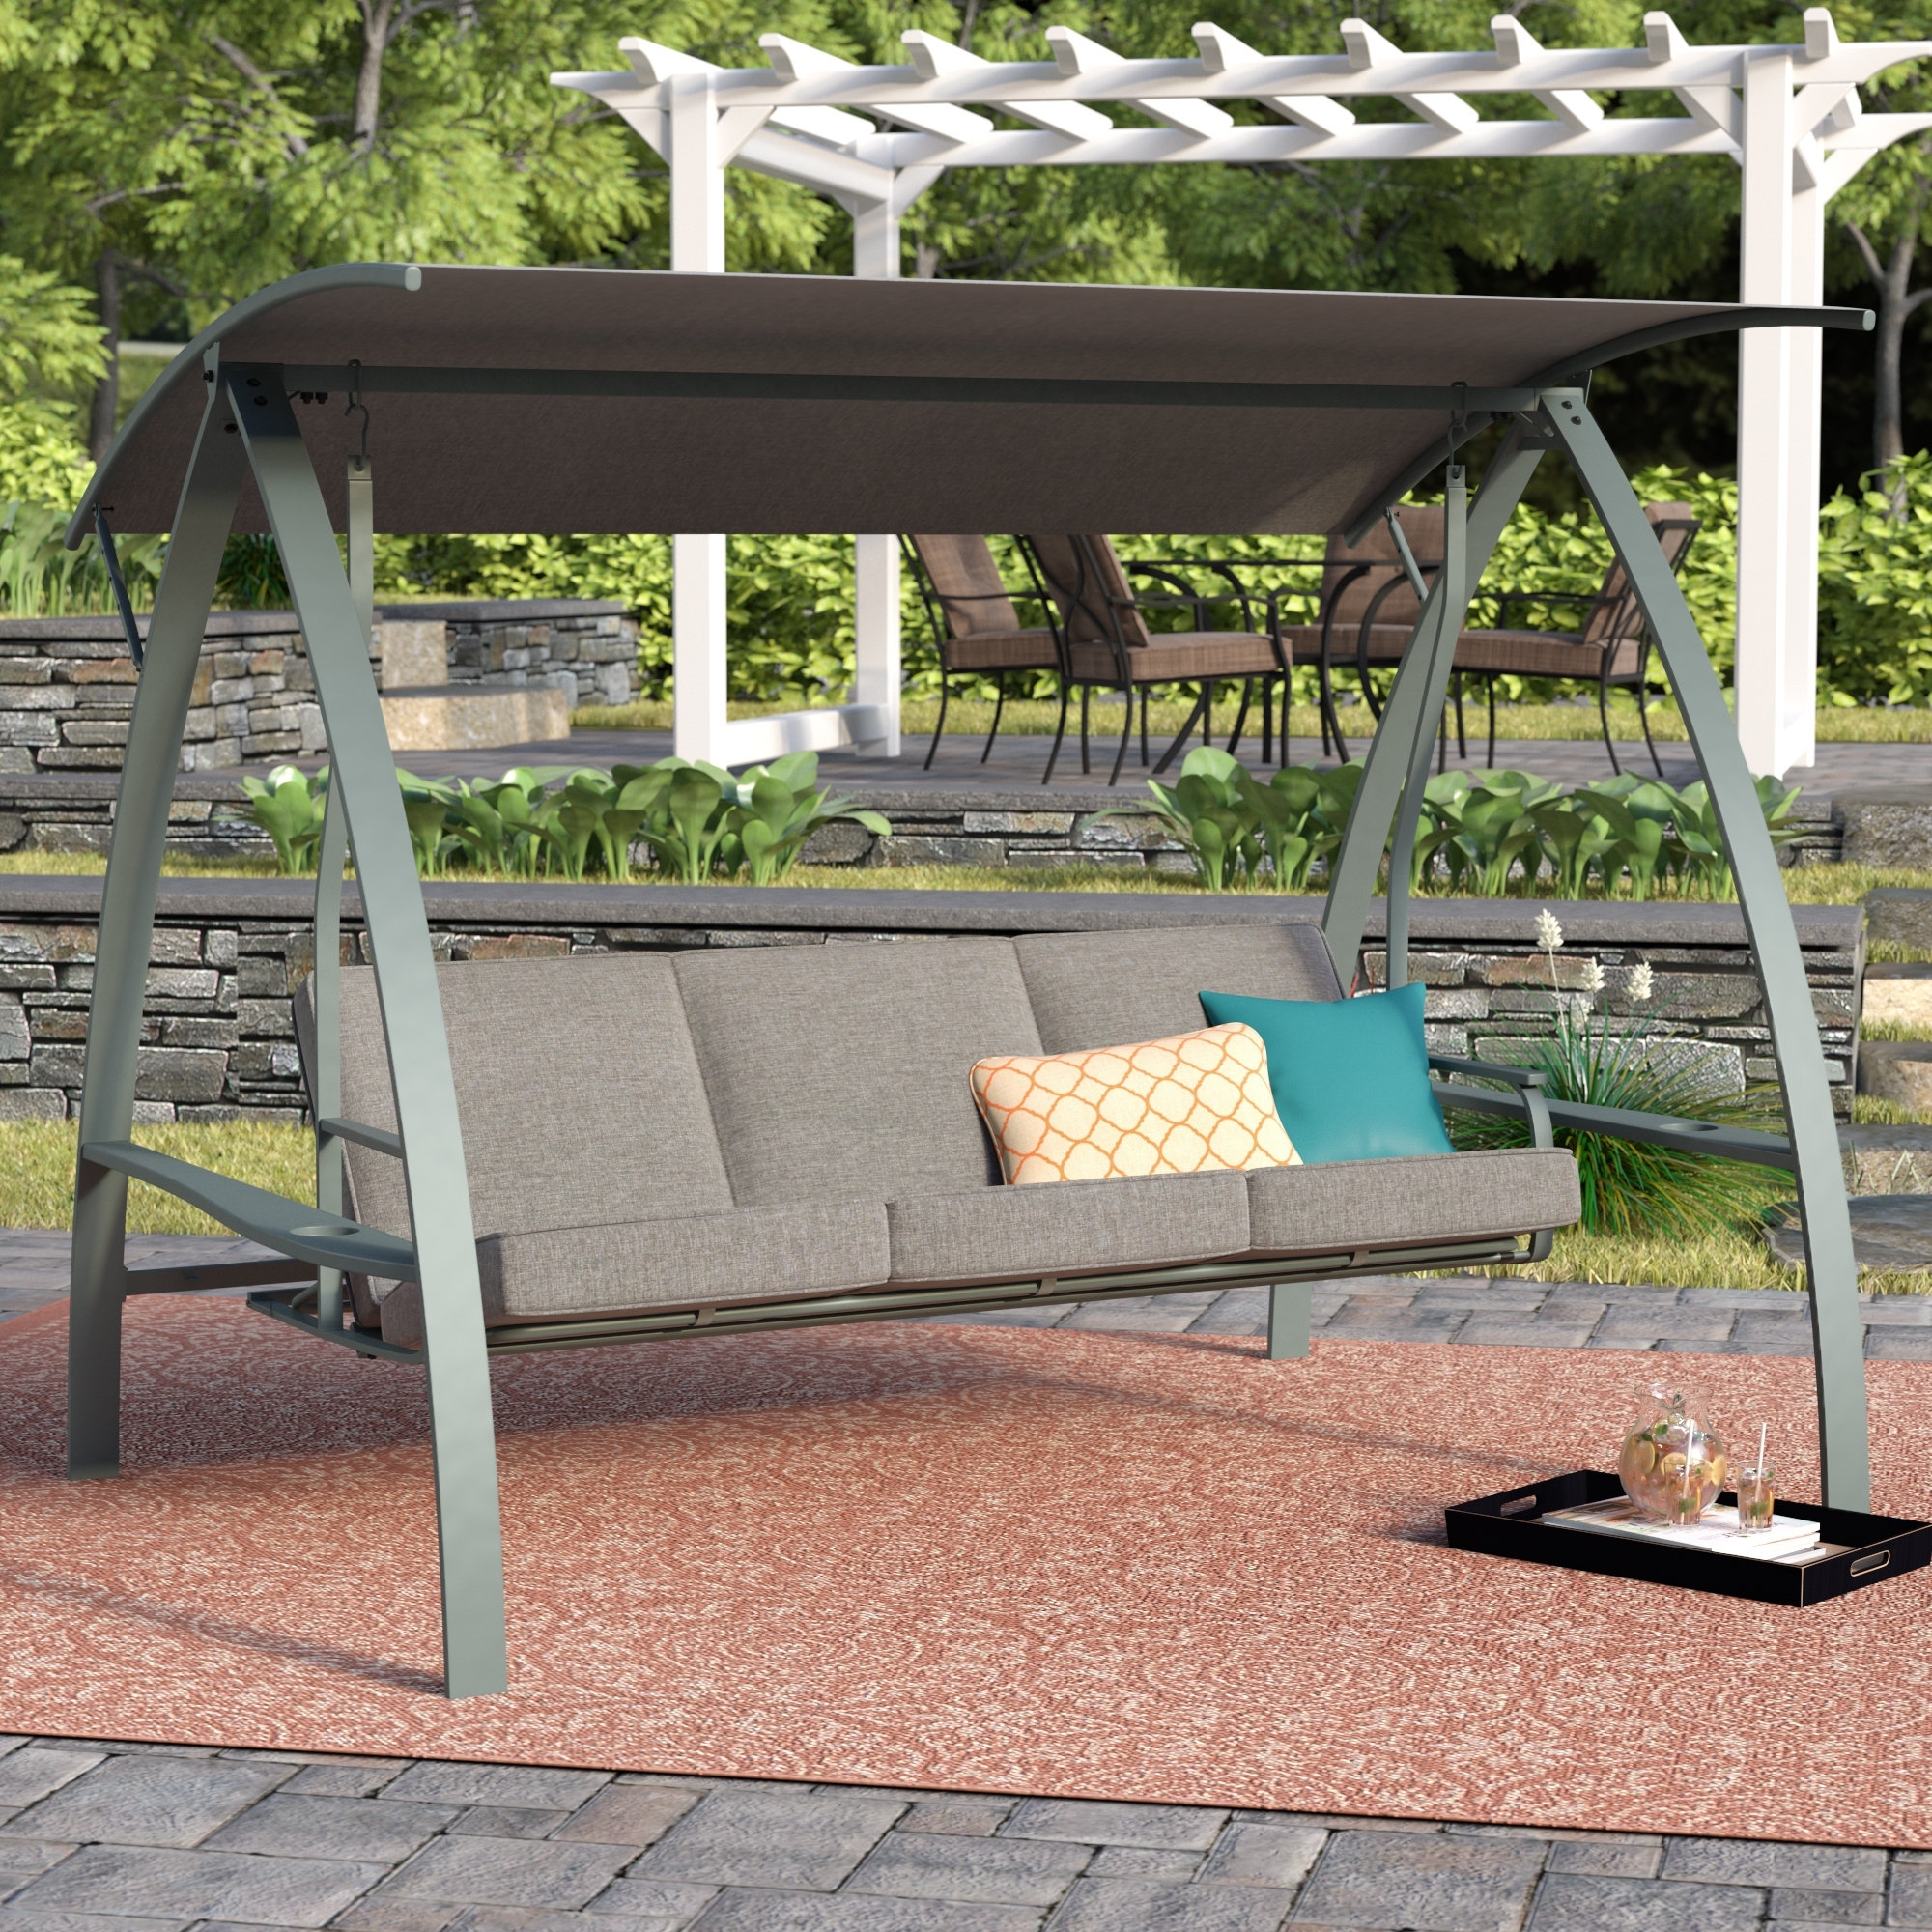 How To Build A Free Standing Frame For Porch Swing Intended For Pergola Porch Swings With Stand (View 15 of 26)